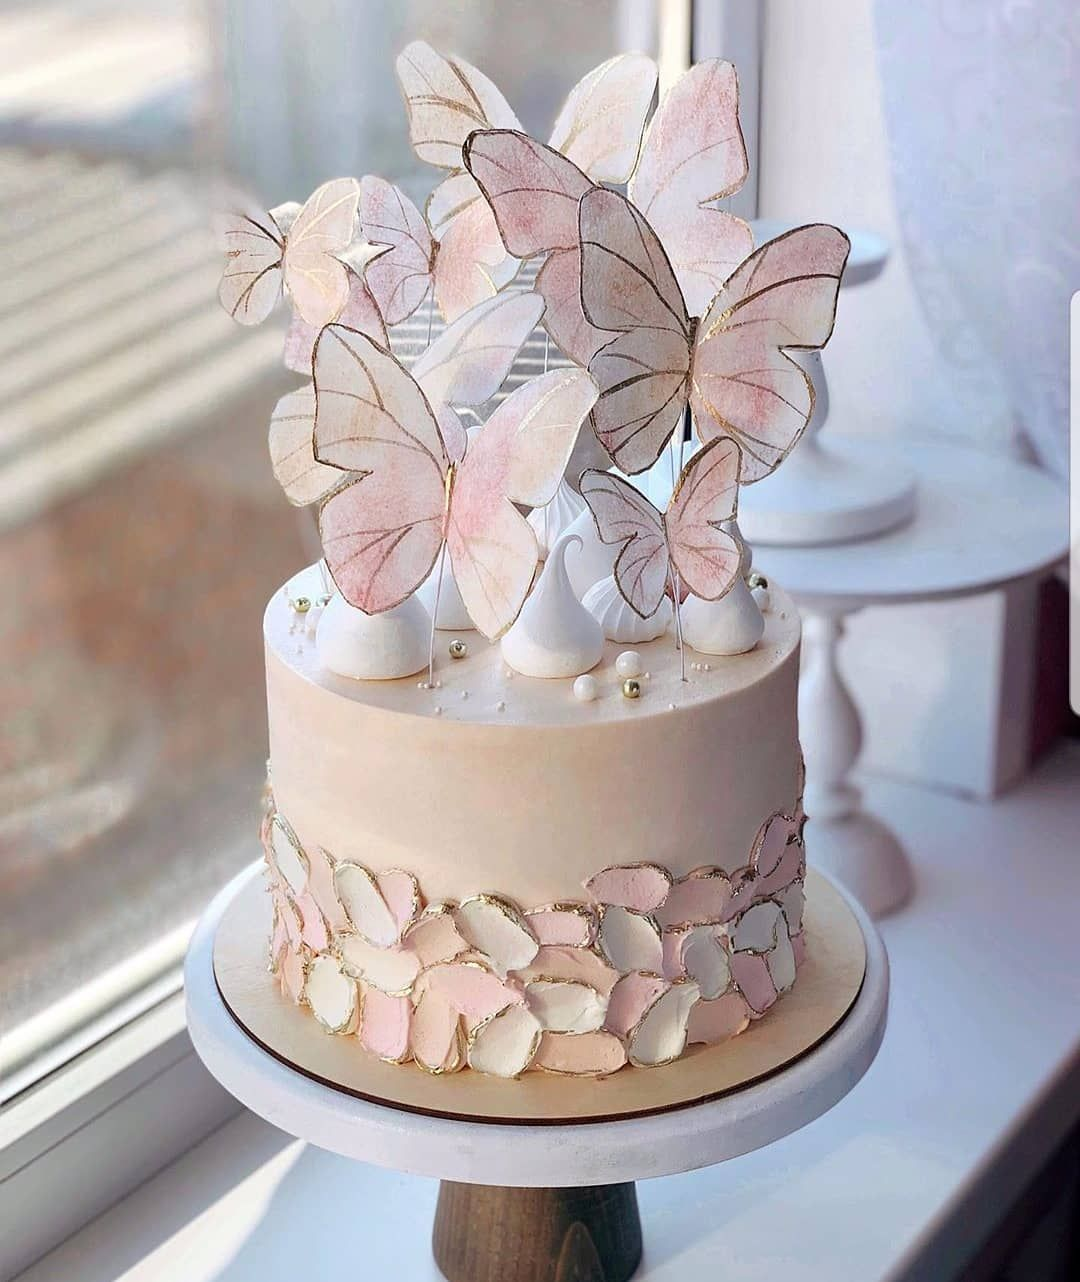 Amourducake V Instagram Yes Or No Amazing Cake With Butterfly By Kulik Ova This Cake Butterfly Birthday Cakes New Birthday Cake Butterfly Cakes